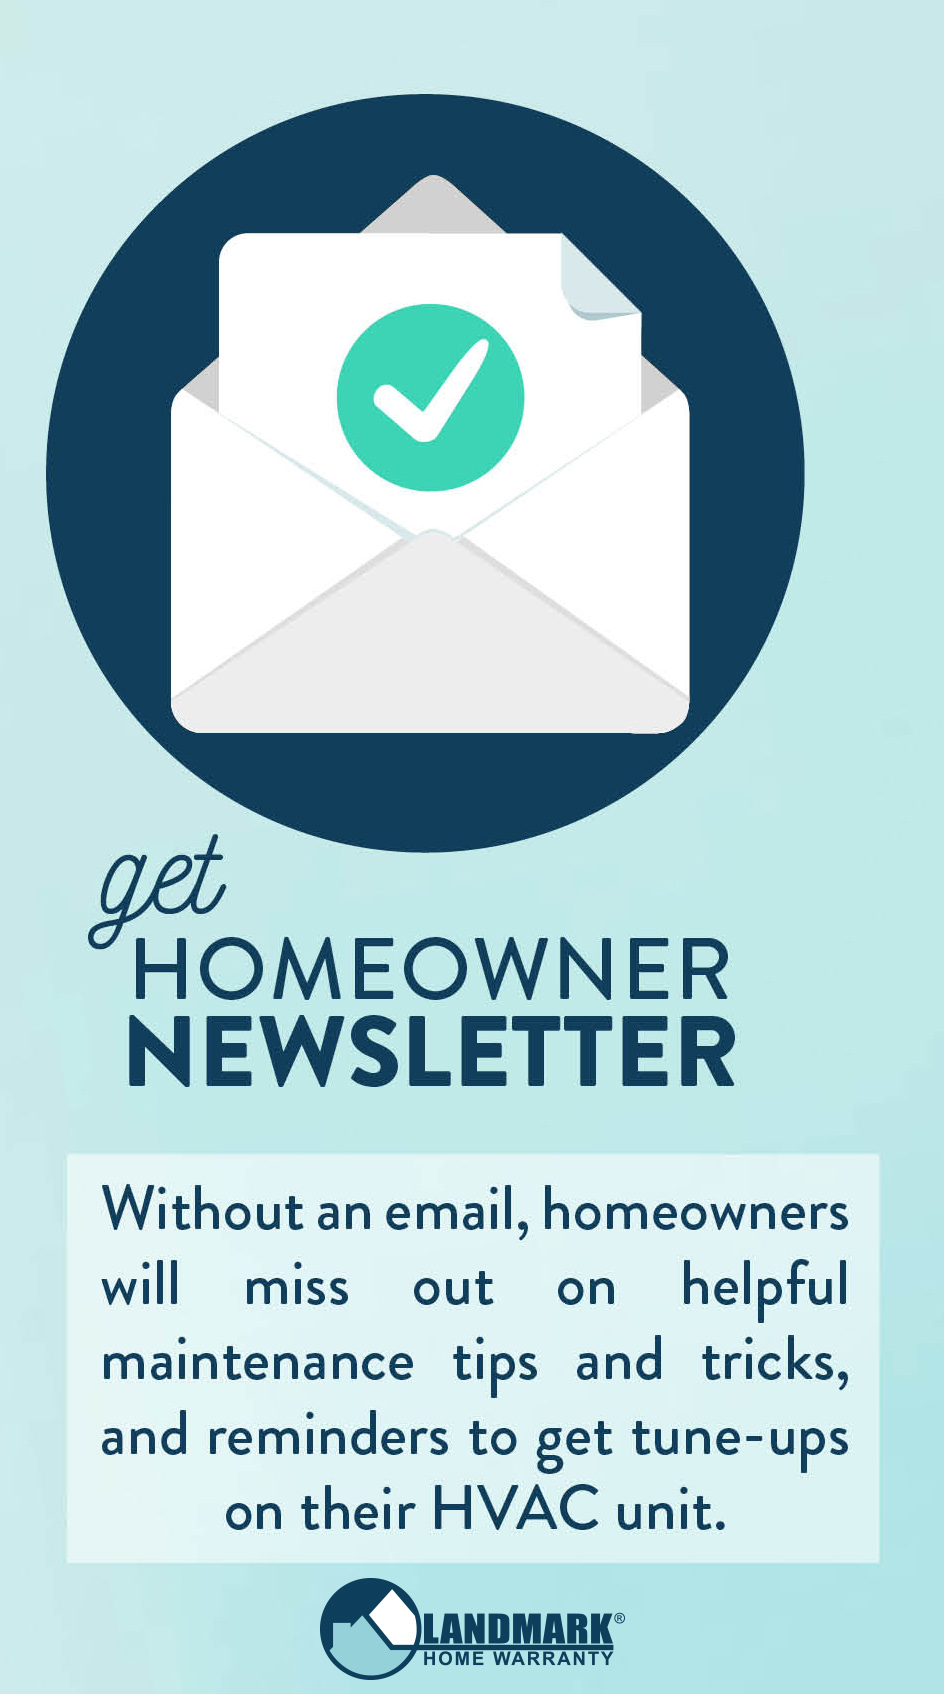 Without an email, homeowners will not get a homeowner newsletter.